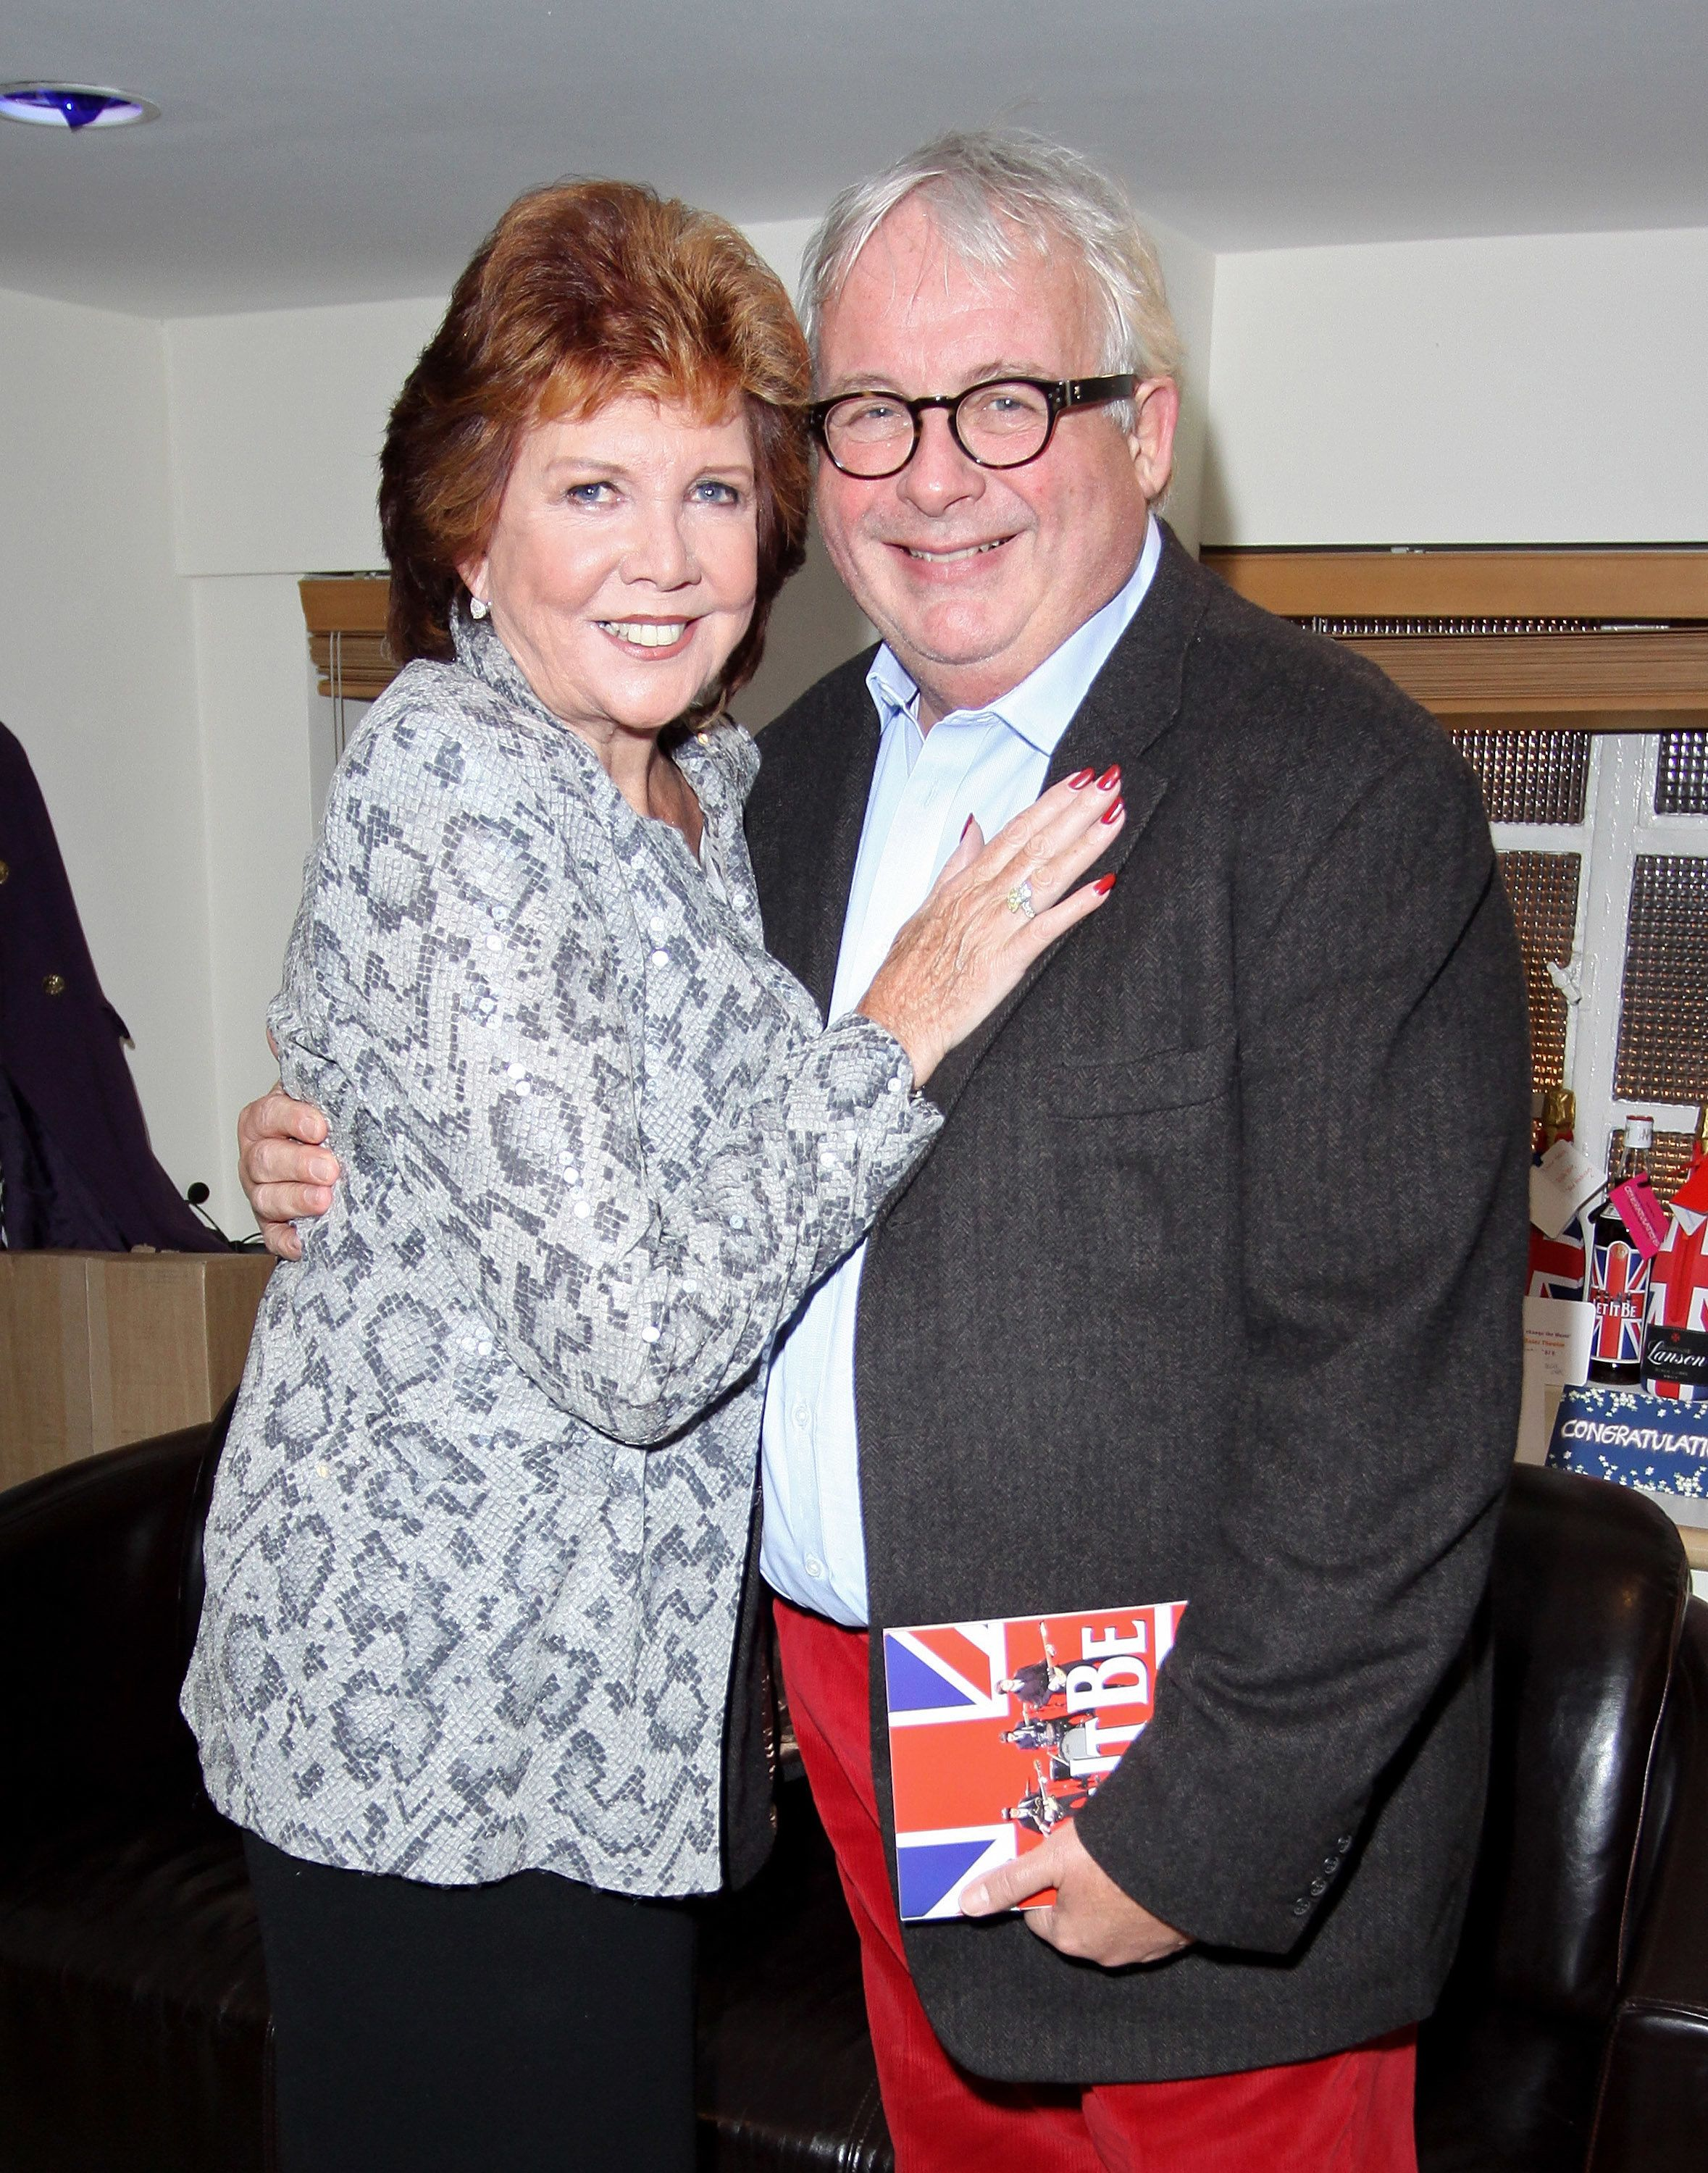 Cilla Black's Friend Christopher Biggins Slams Channel 5's 'Blind Date' Reboot